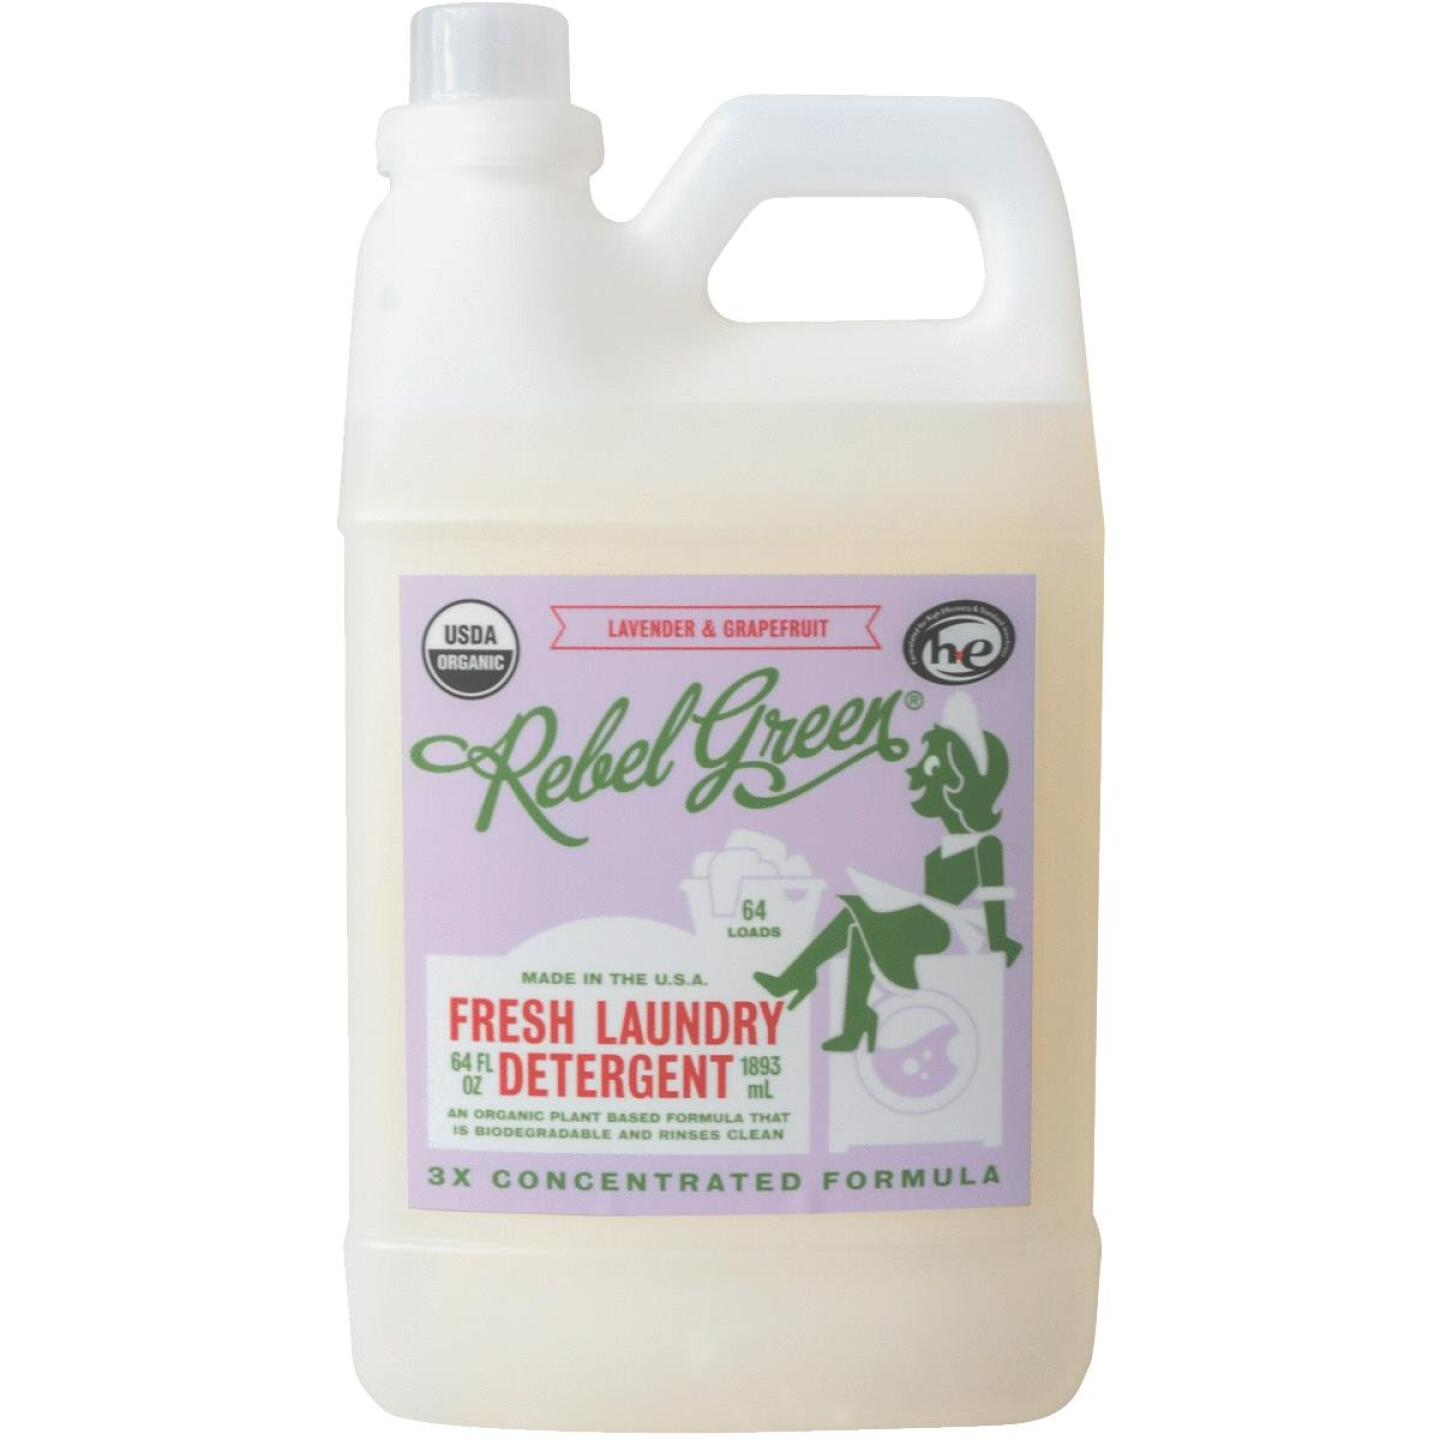 Rebel Green 64 Oz. 64-Load Lavender & Grapefruit Laundry Detergent Image 1